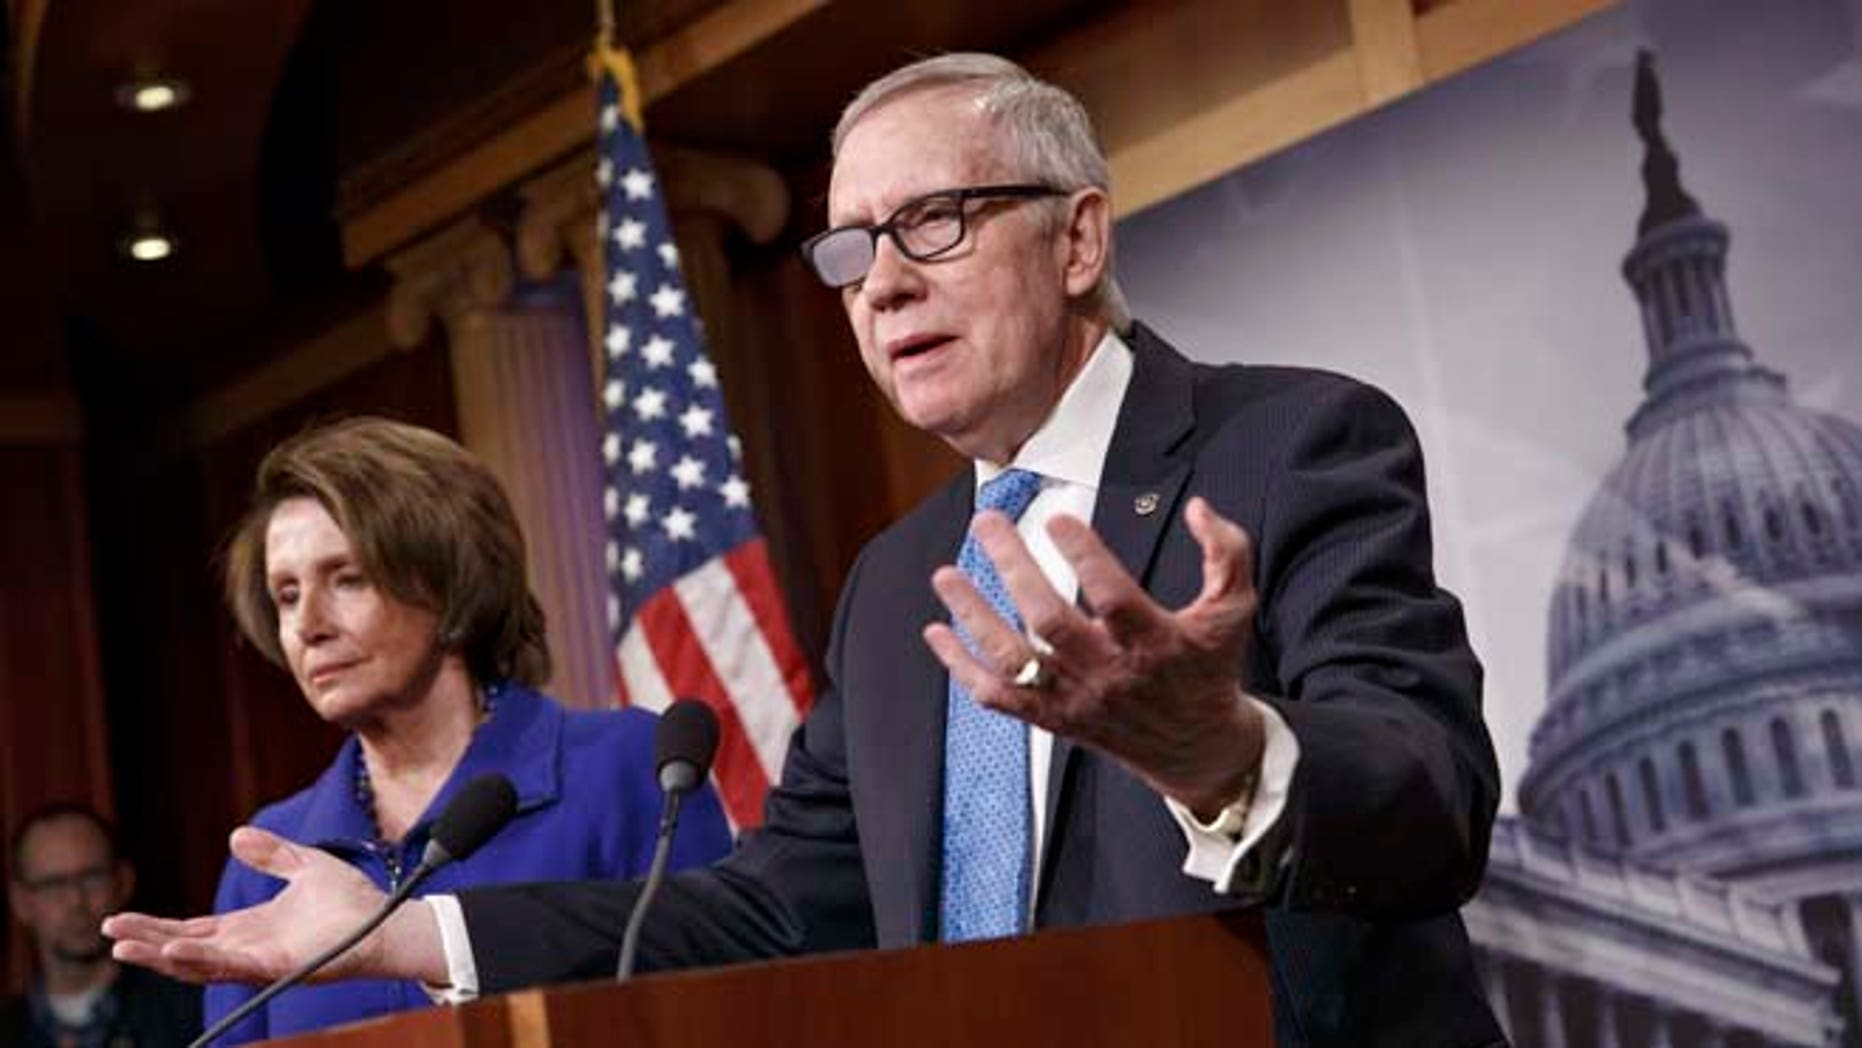 Feb. 26, 2015: Senate Minority Leader Harry Reid of Nev., accompanied by House Minority Leader Nancy Pelosi of Calif., gestures during a news conference on Capitol Hill.